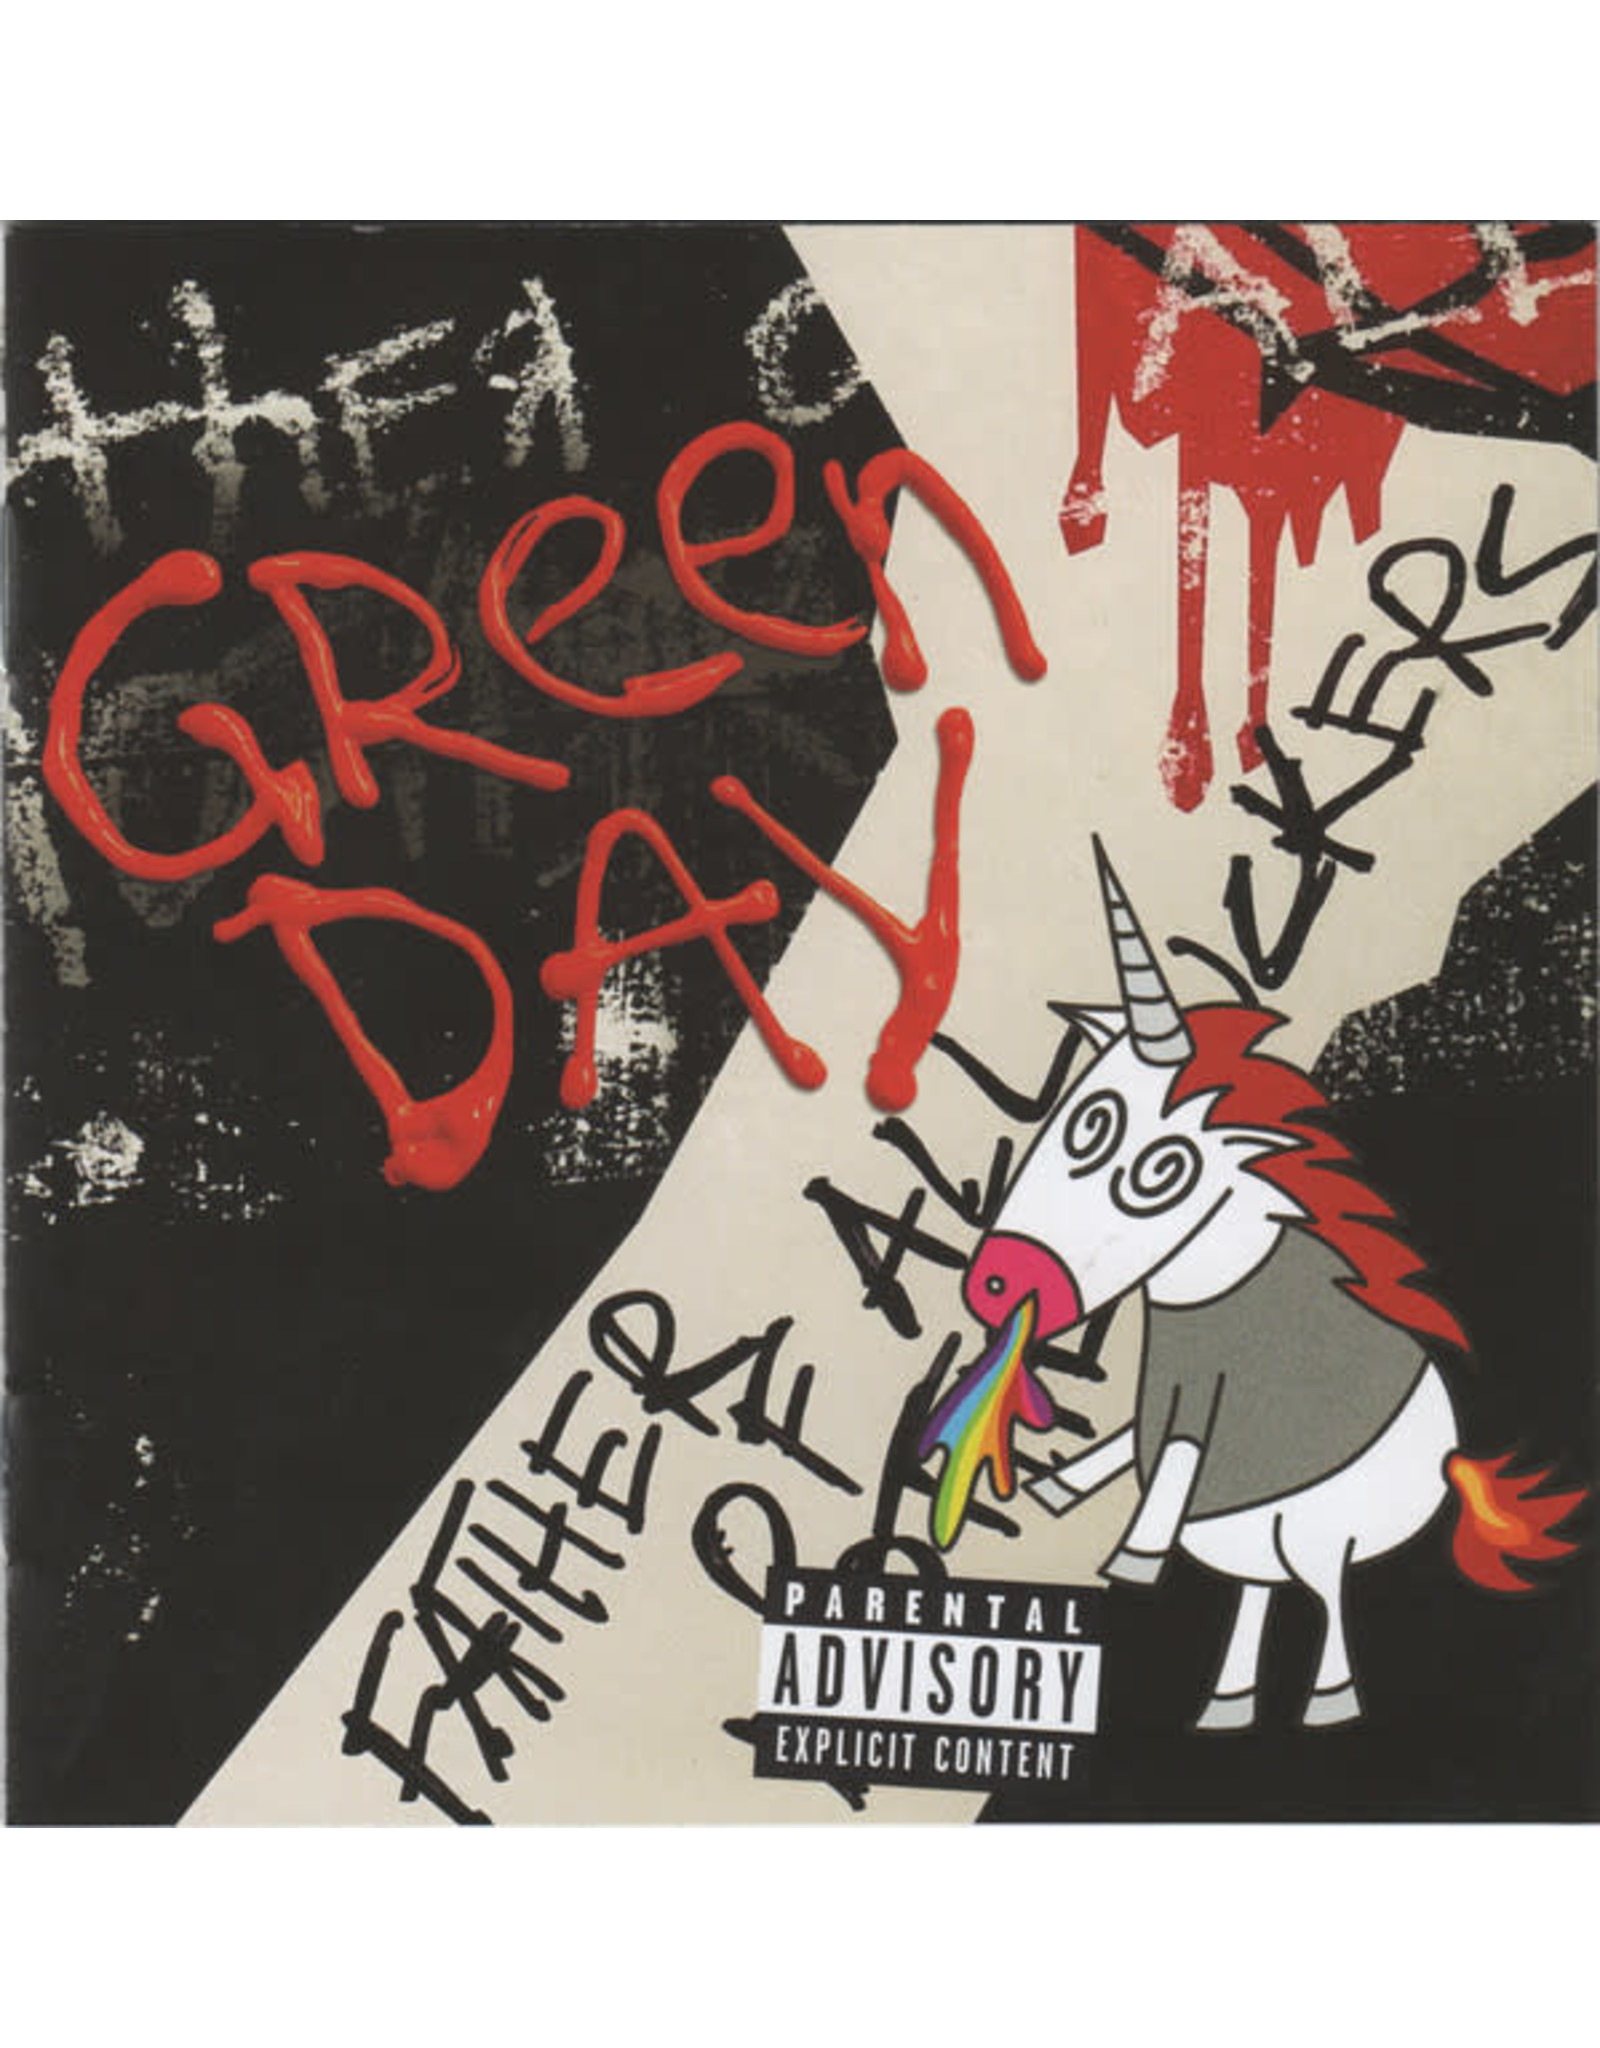 Green Day - Father of All CD